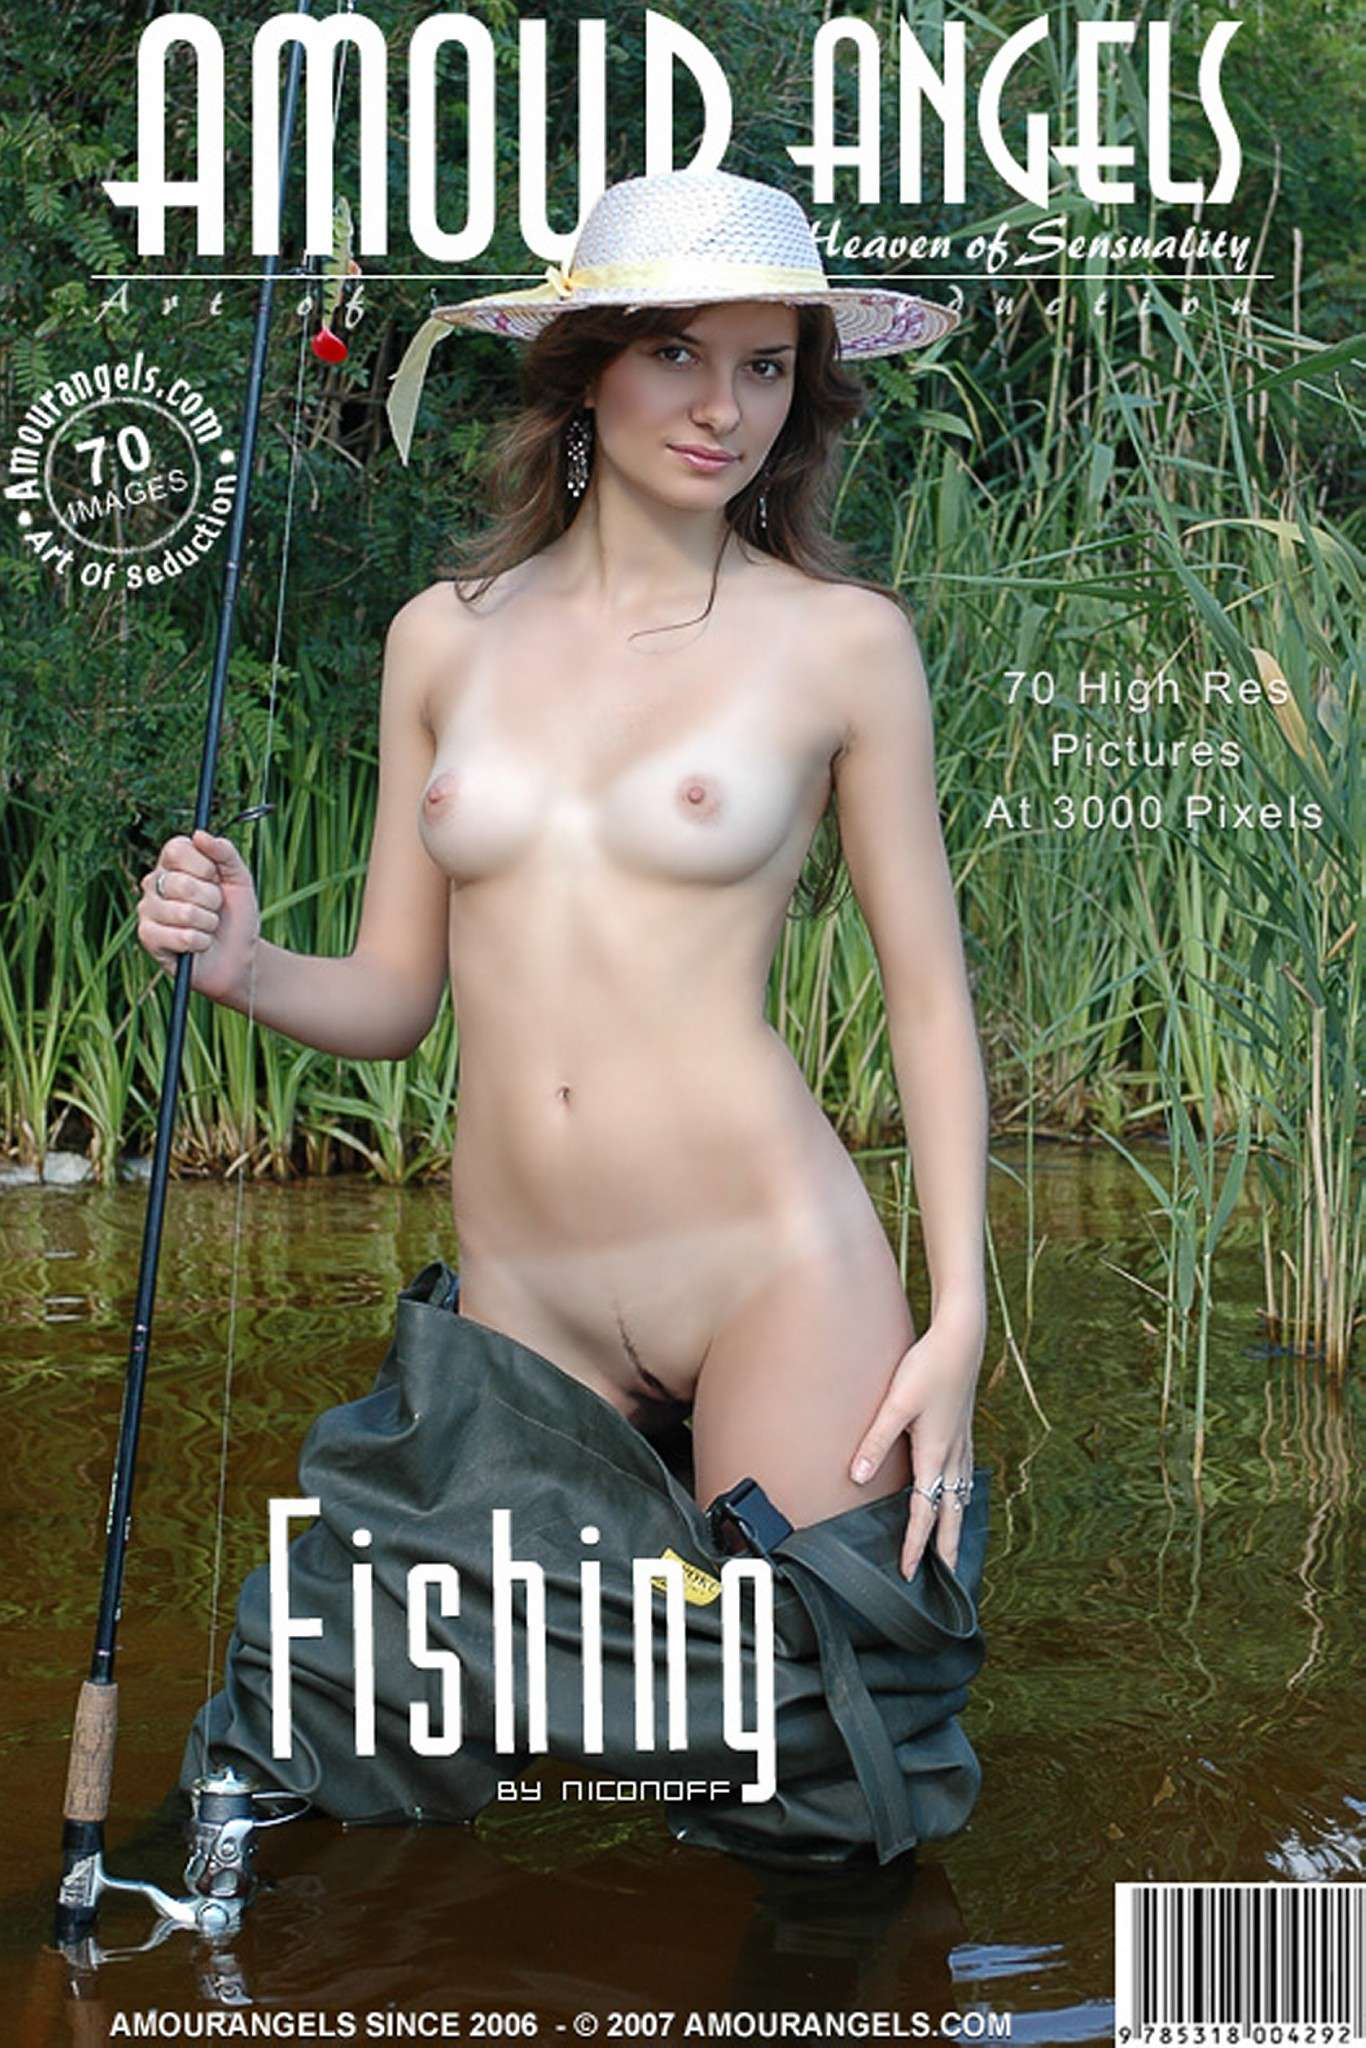 Evgeniya Fishing